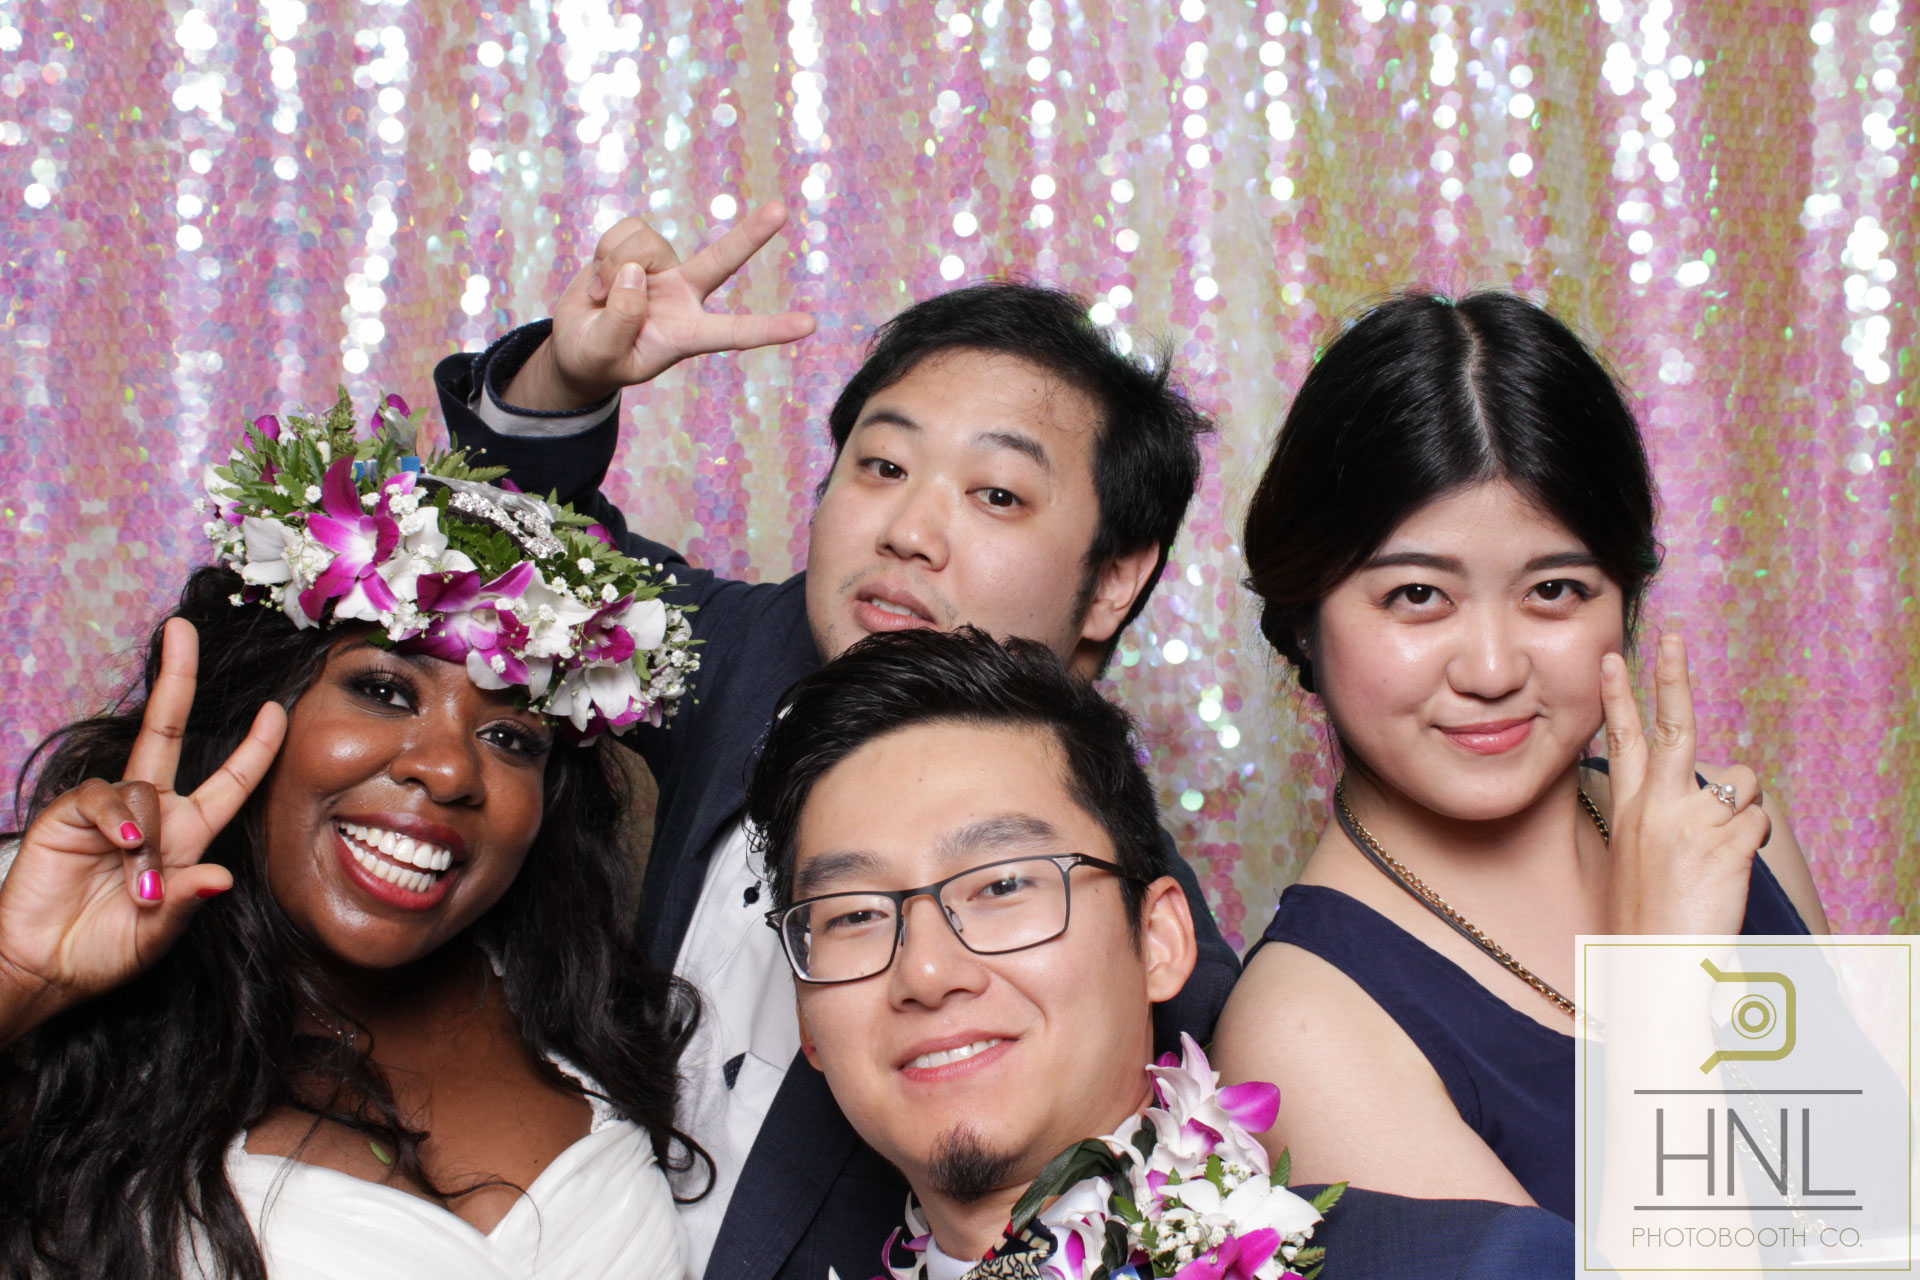 Yemi and Yang Wedding Photo booth Hiltion Hawaiian Village Resort Waikiki Oahu Hawaii -1.jpg